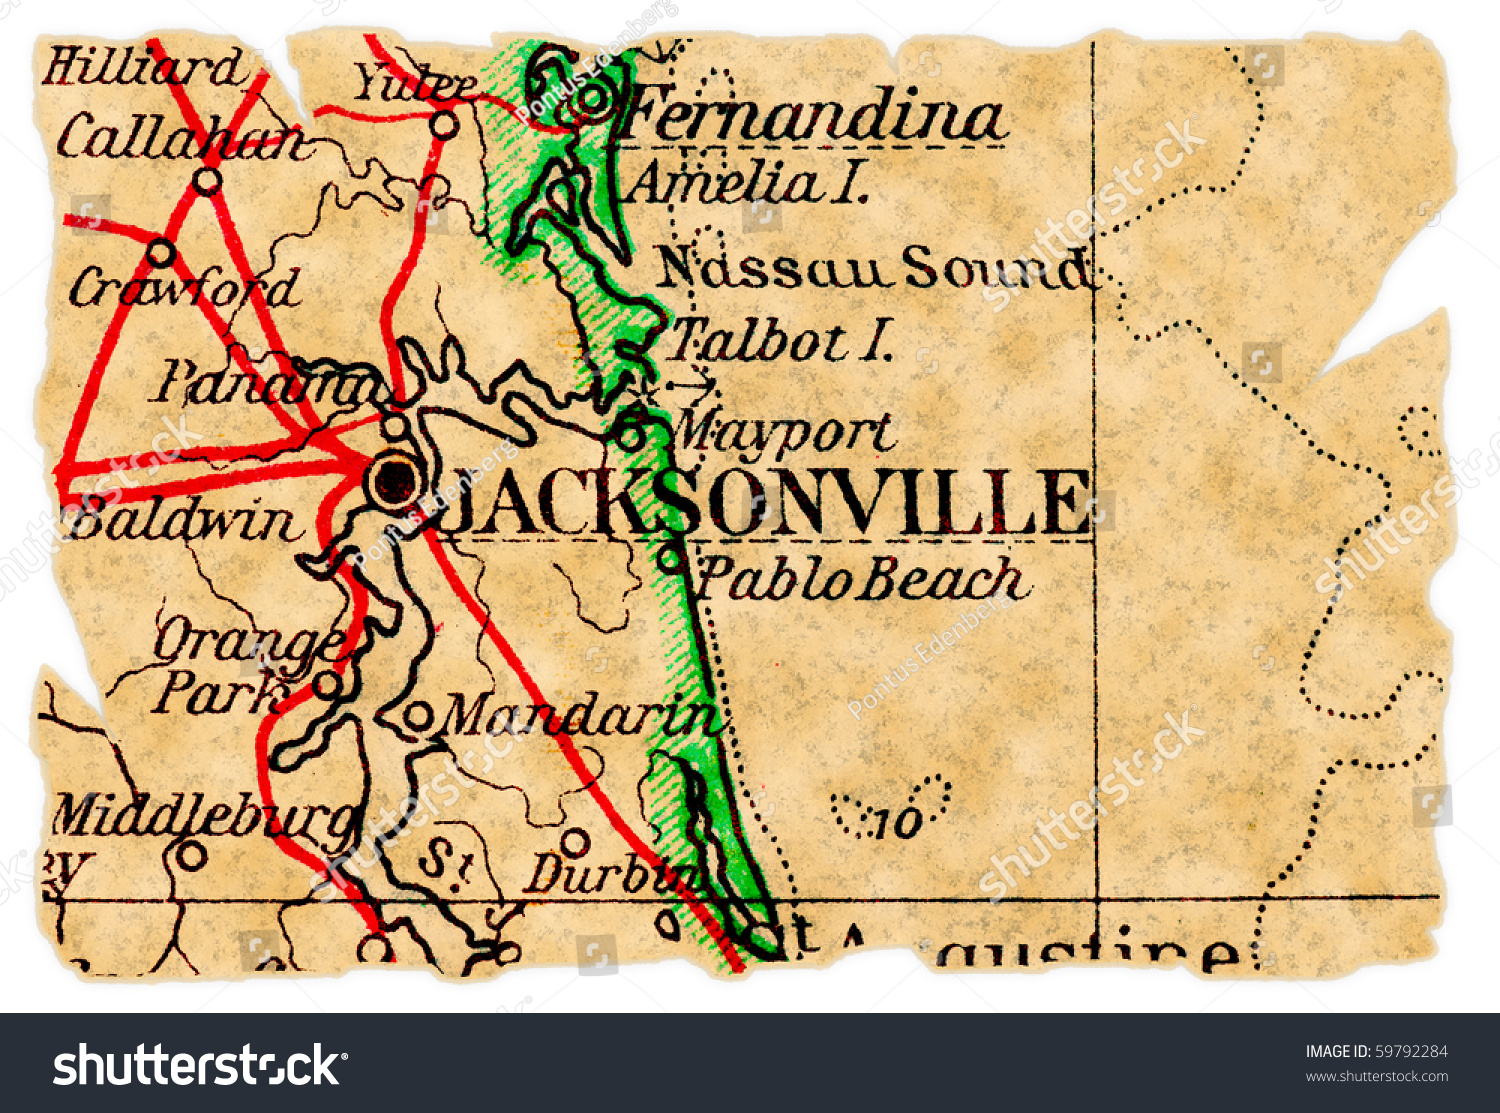 Jacksonville Florida On Old Torn Map Stock Photo Edit Now 59792284